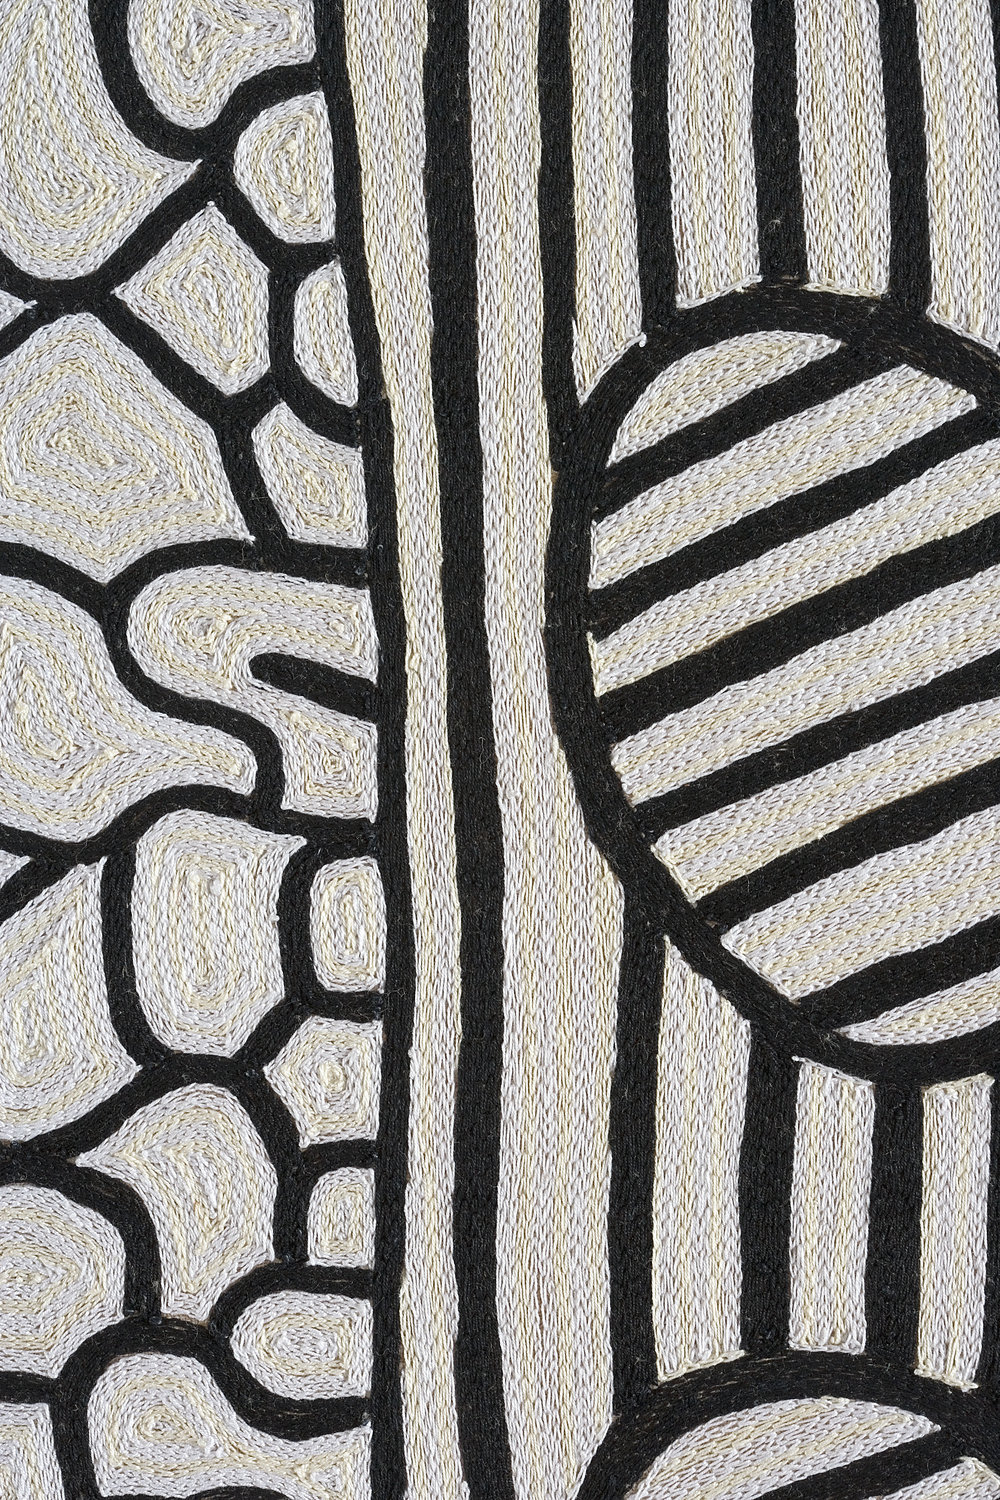 Cells 1, hand embroidered, detail